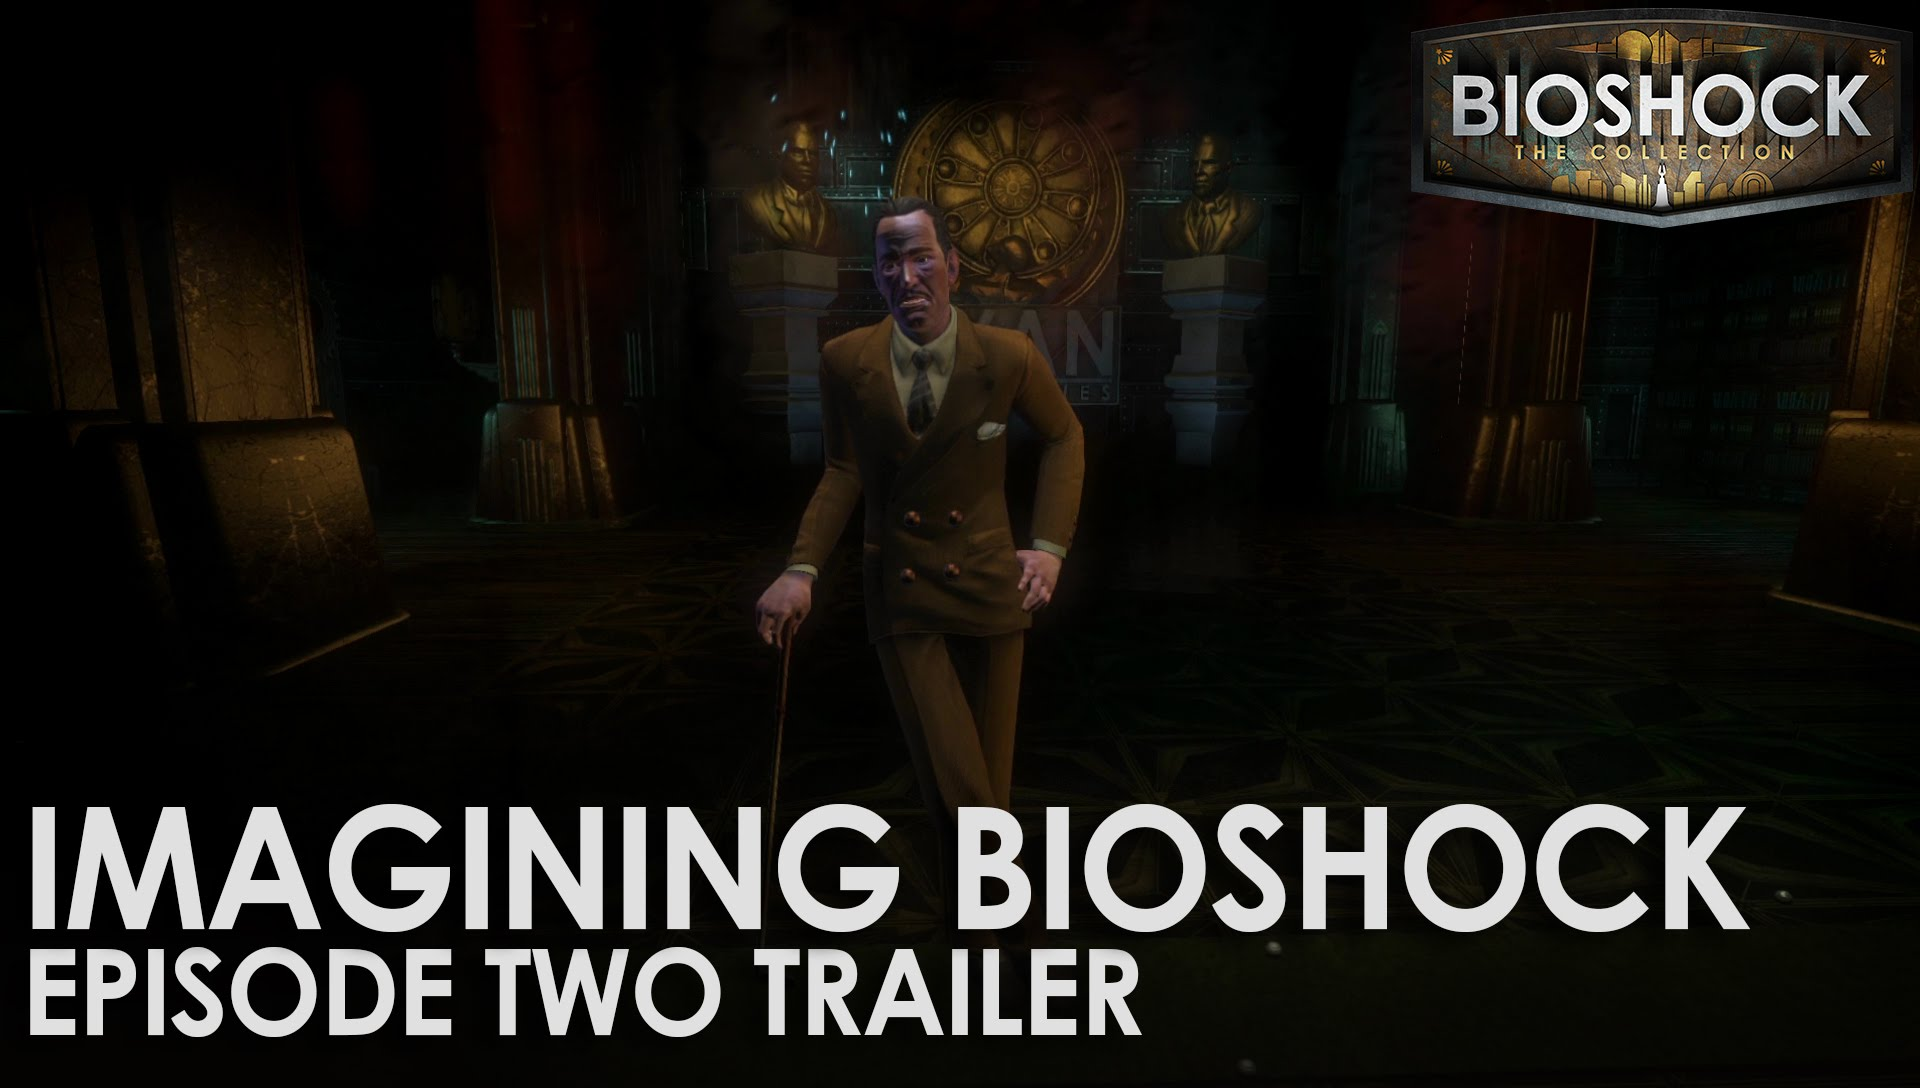 Imagining BioShock: Episode Two Trailer